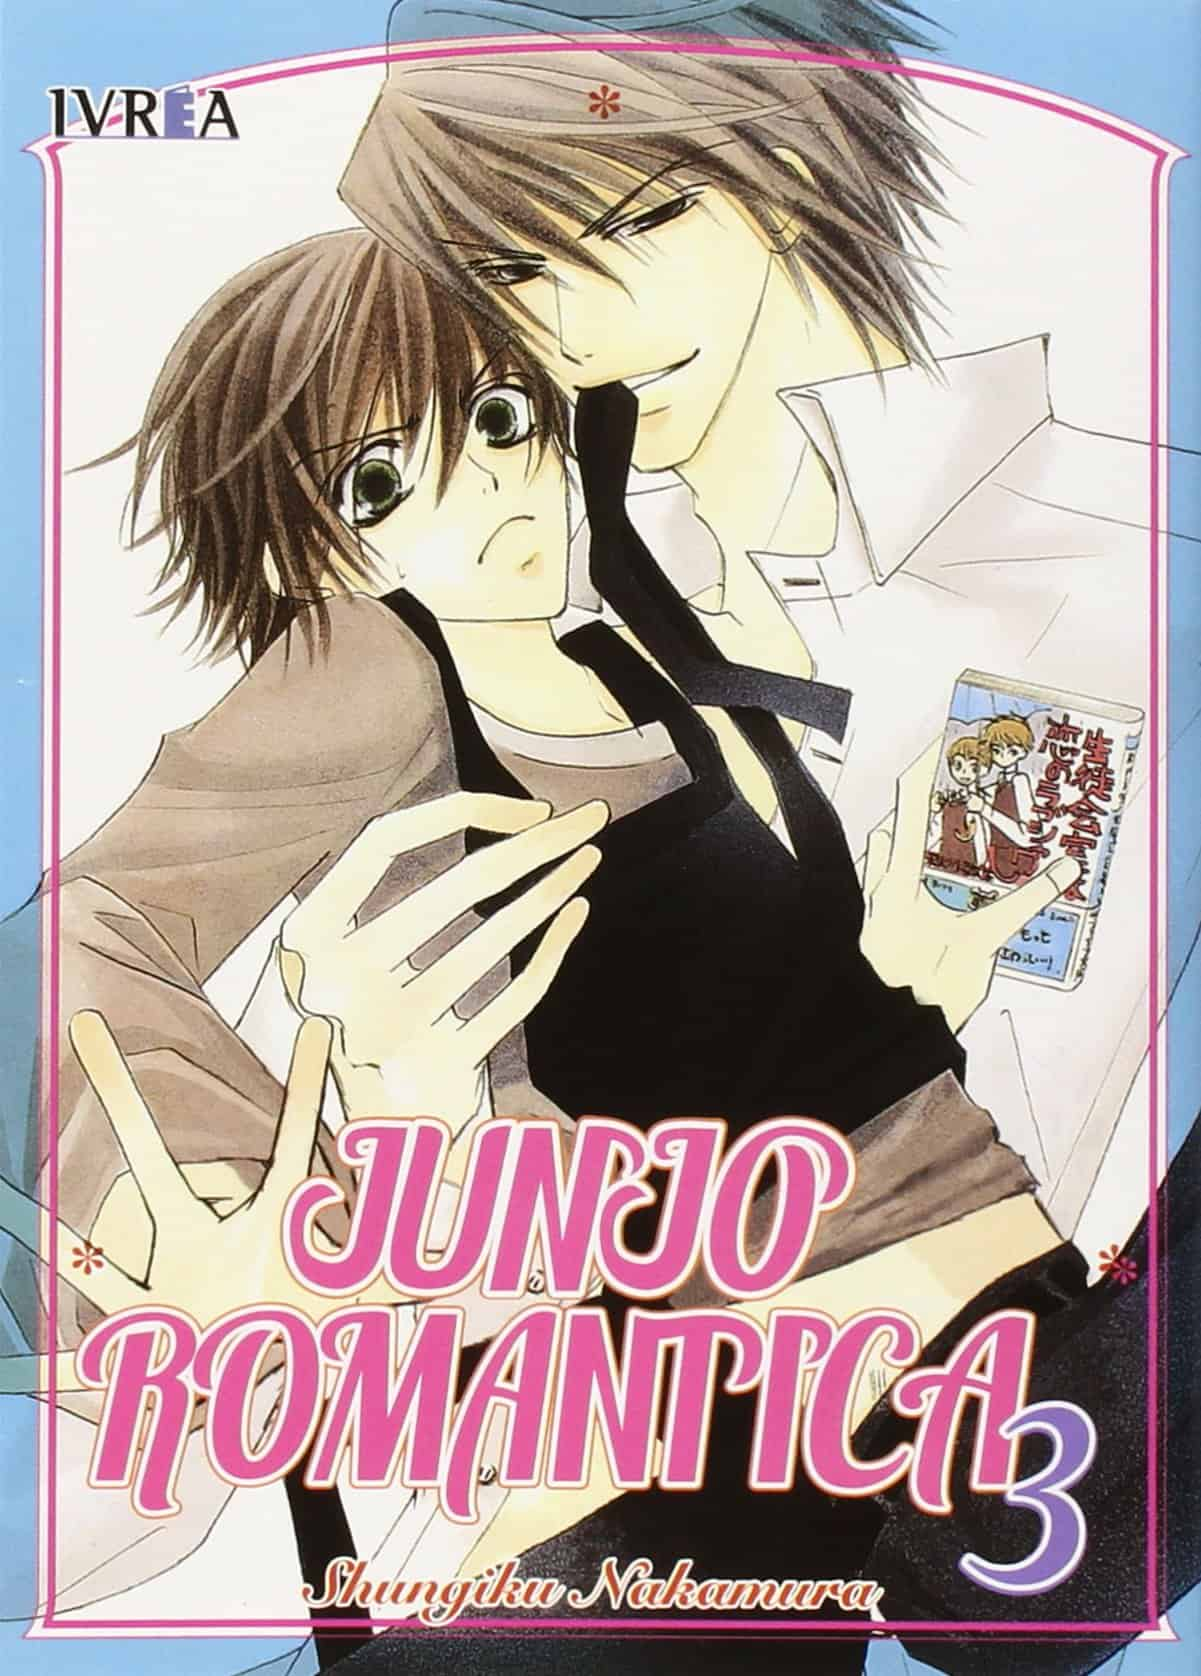 JUNJO ROMANTICA 03 (COMIC)